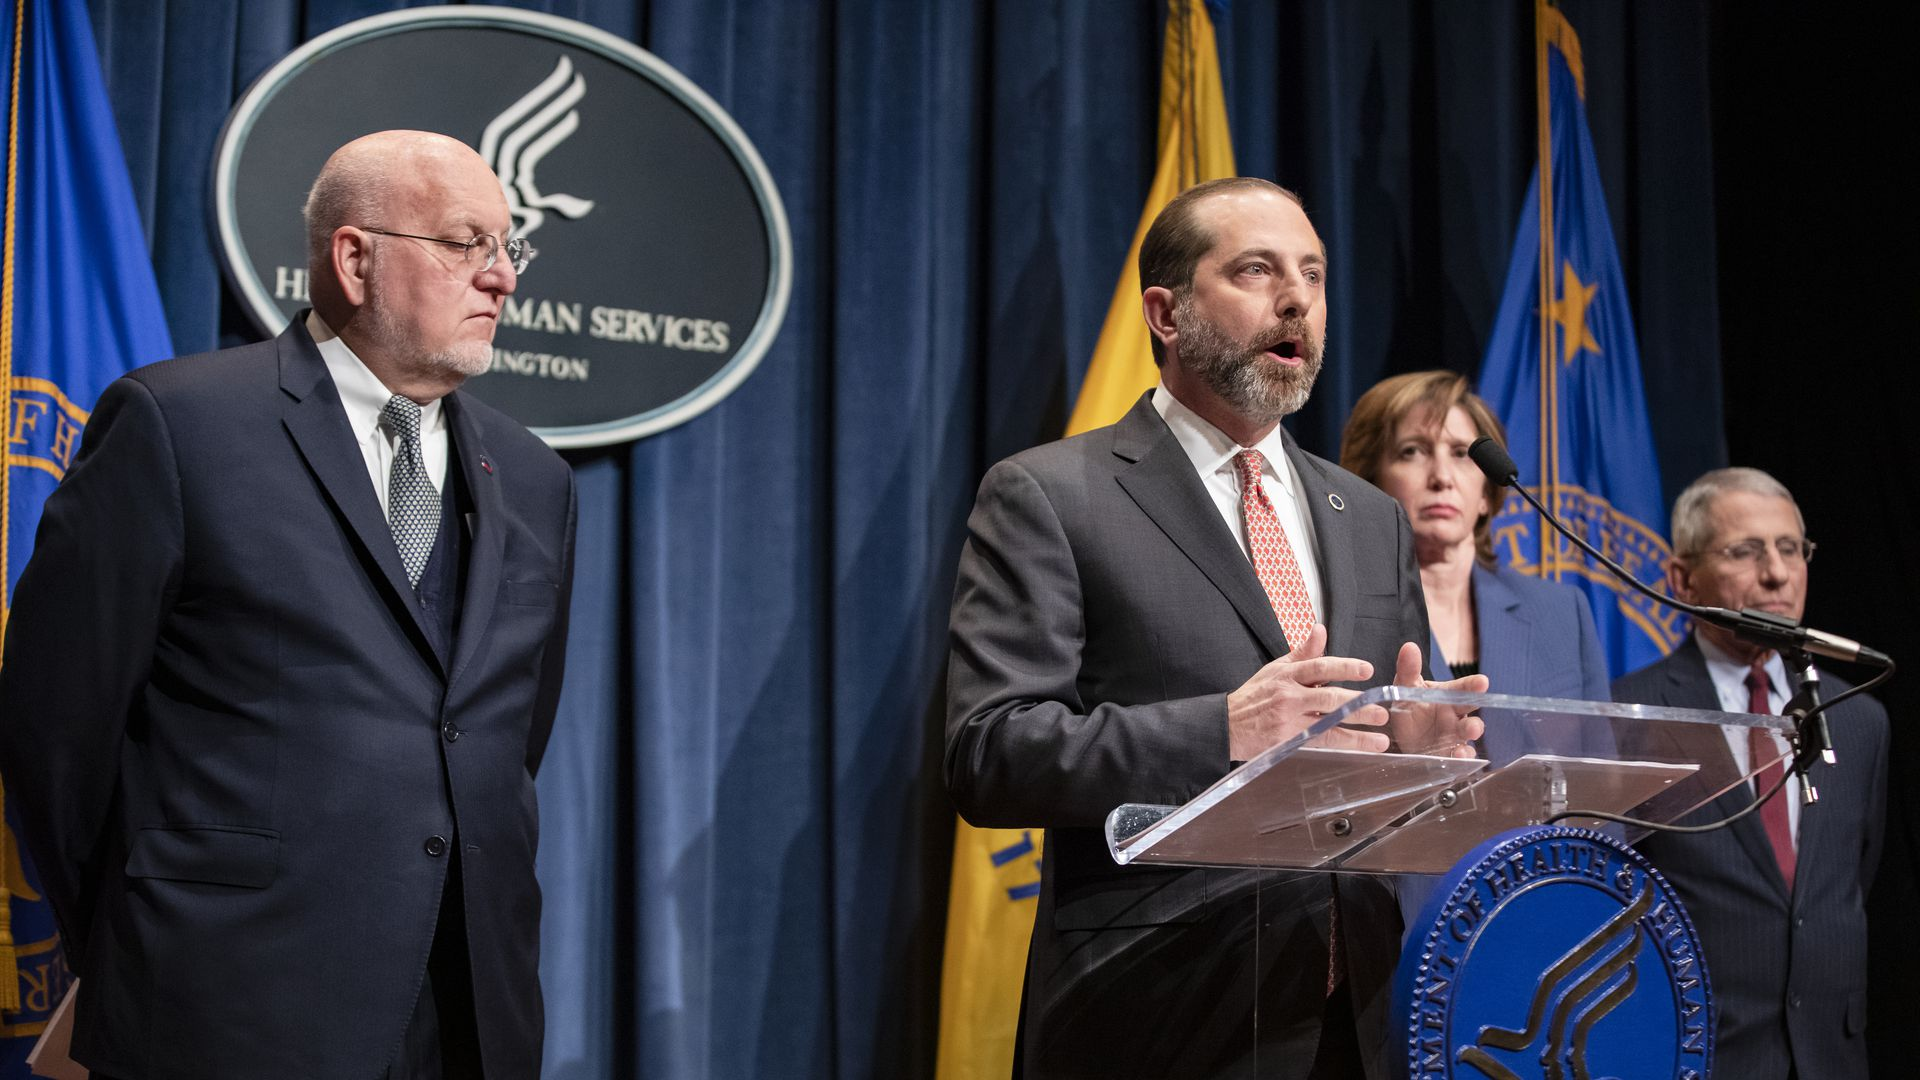 HHS Secretary Alex Azar and 3 other public health officials at the news briefing